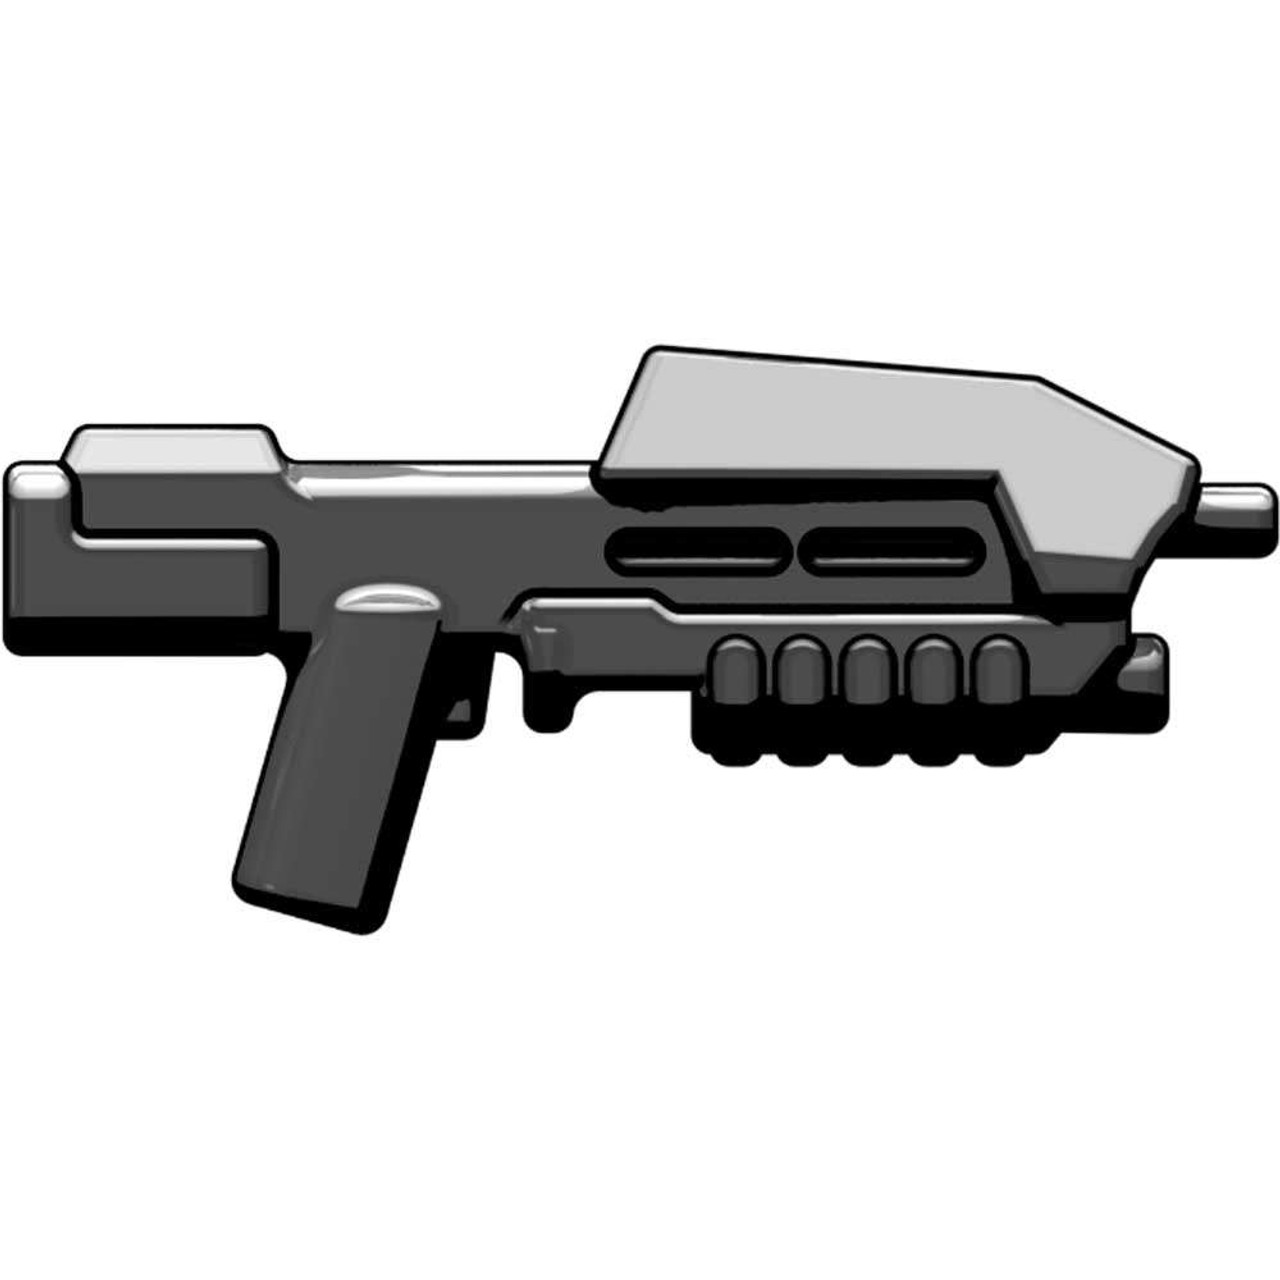 BrickArms Weapons BA-M5 Space Assault Rifle 2.5-Inch [Black]